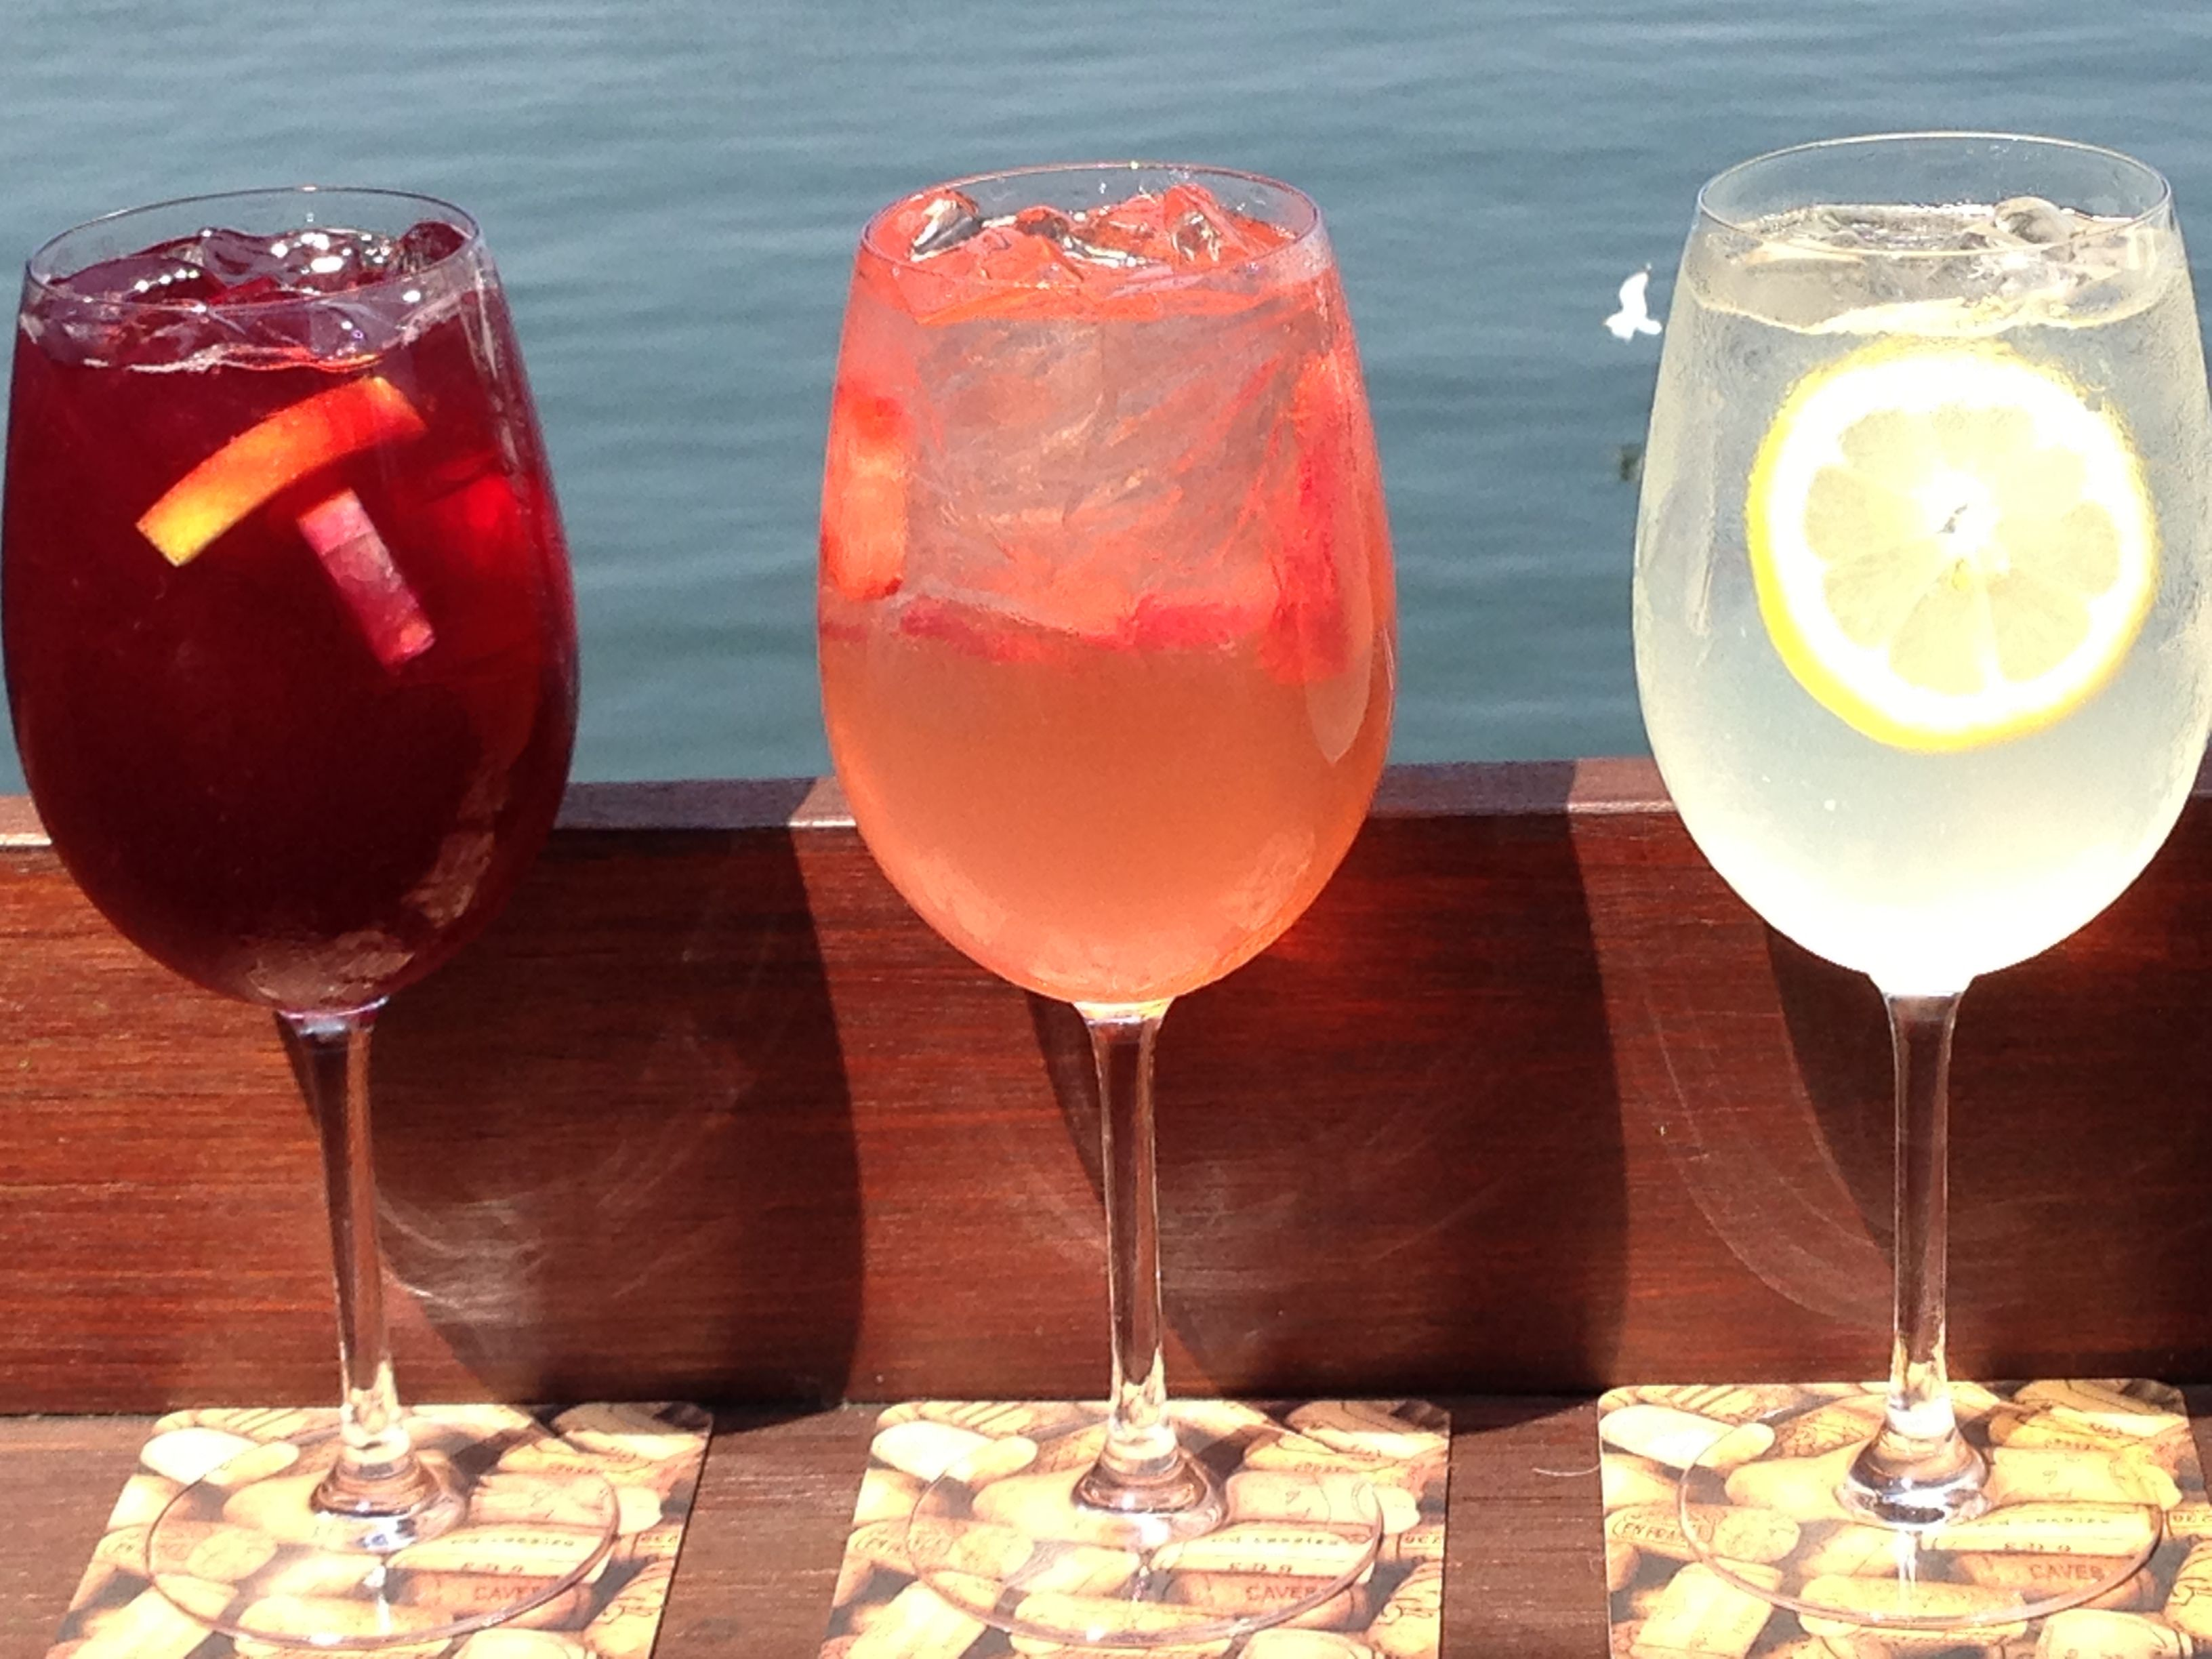 Our Sangria Triple Threat White Strawberry And The Legal Original Legal Seafood Sangria Recipe Legal Seafood Sangria Recipes